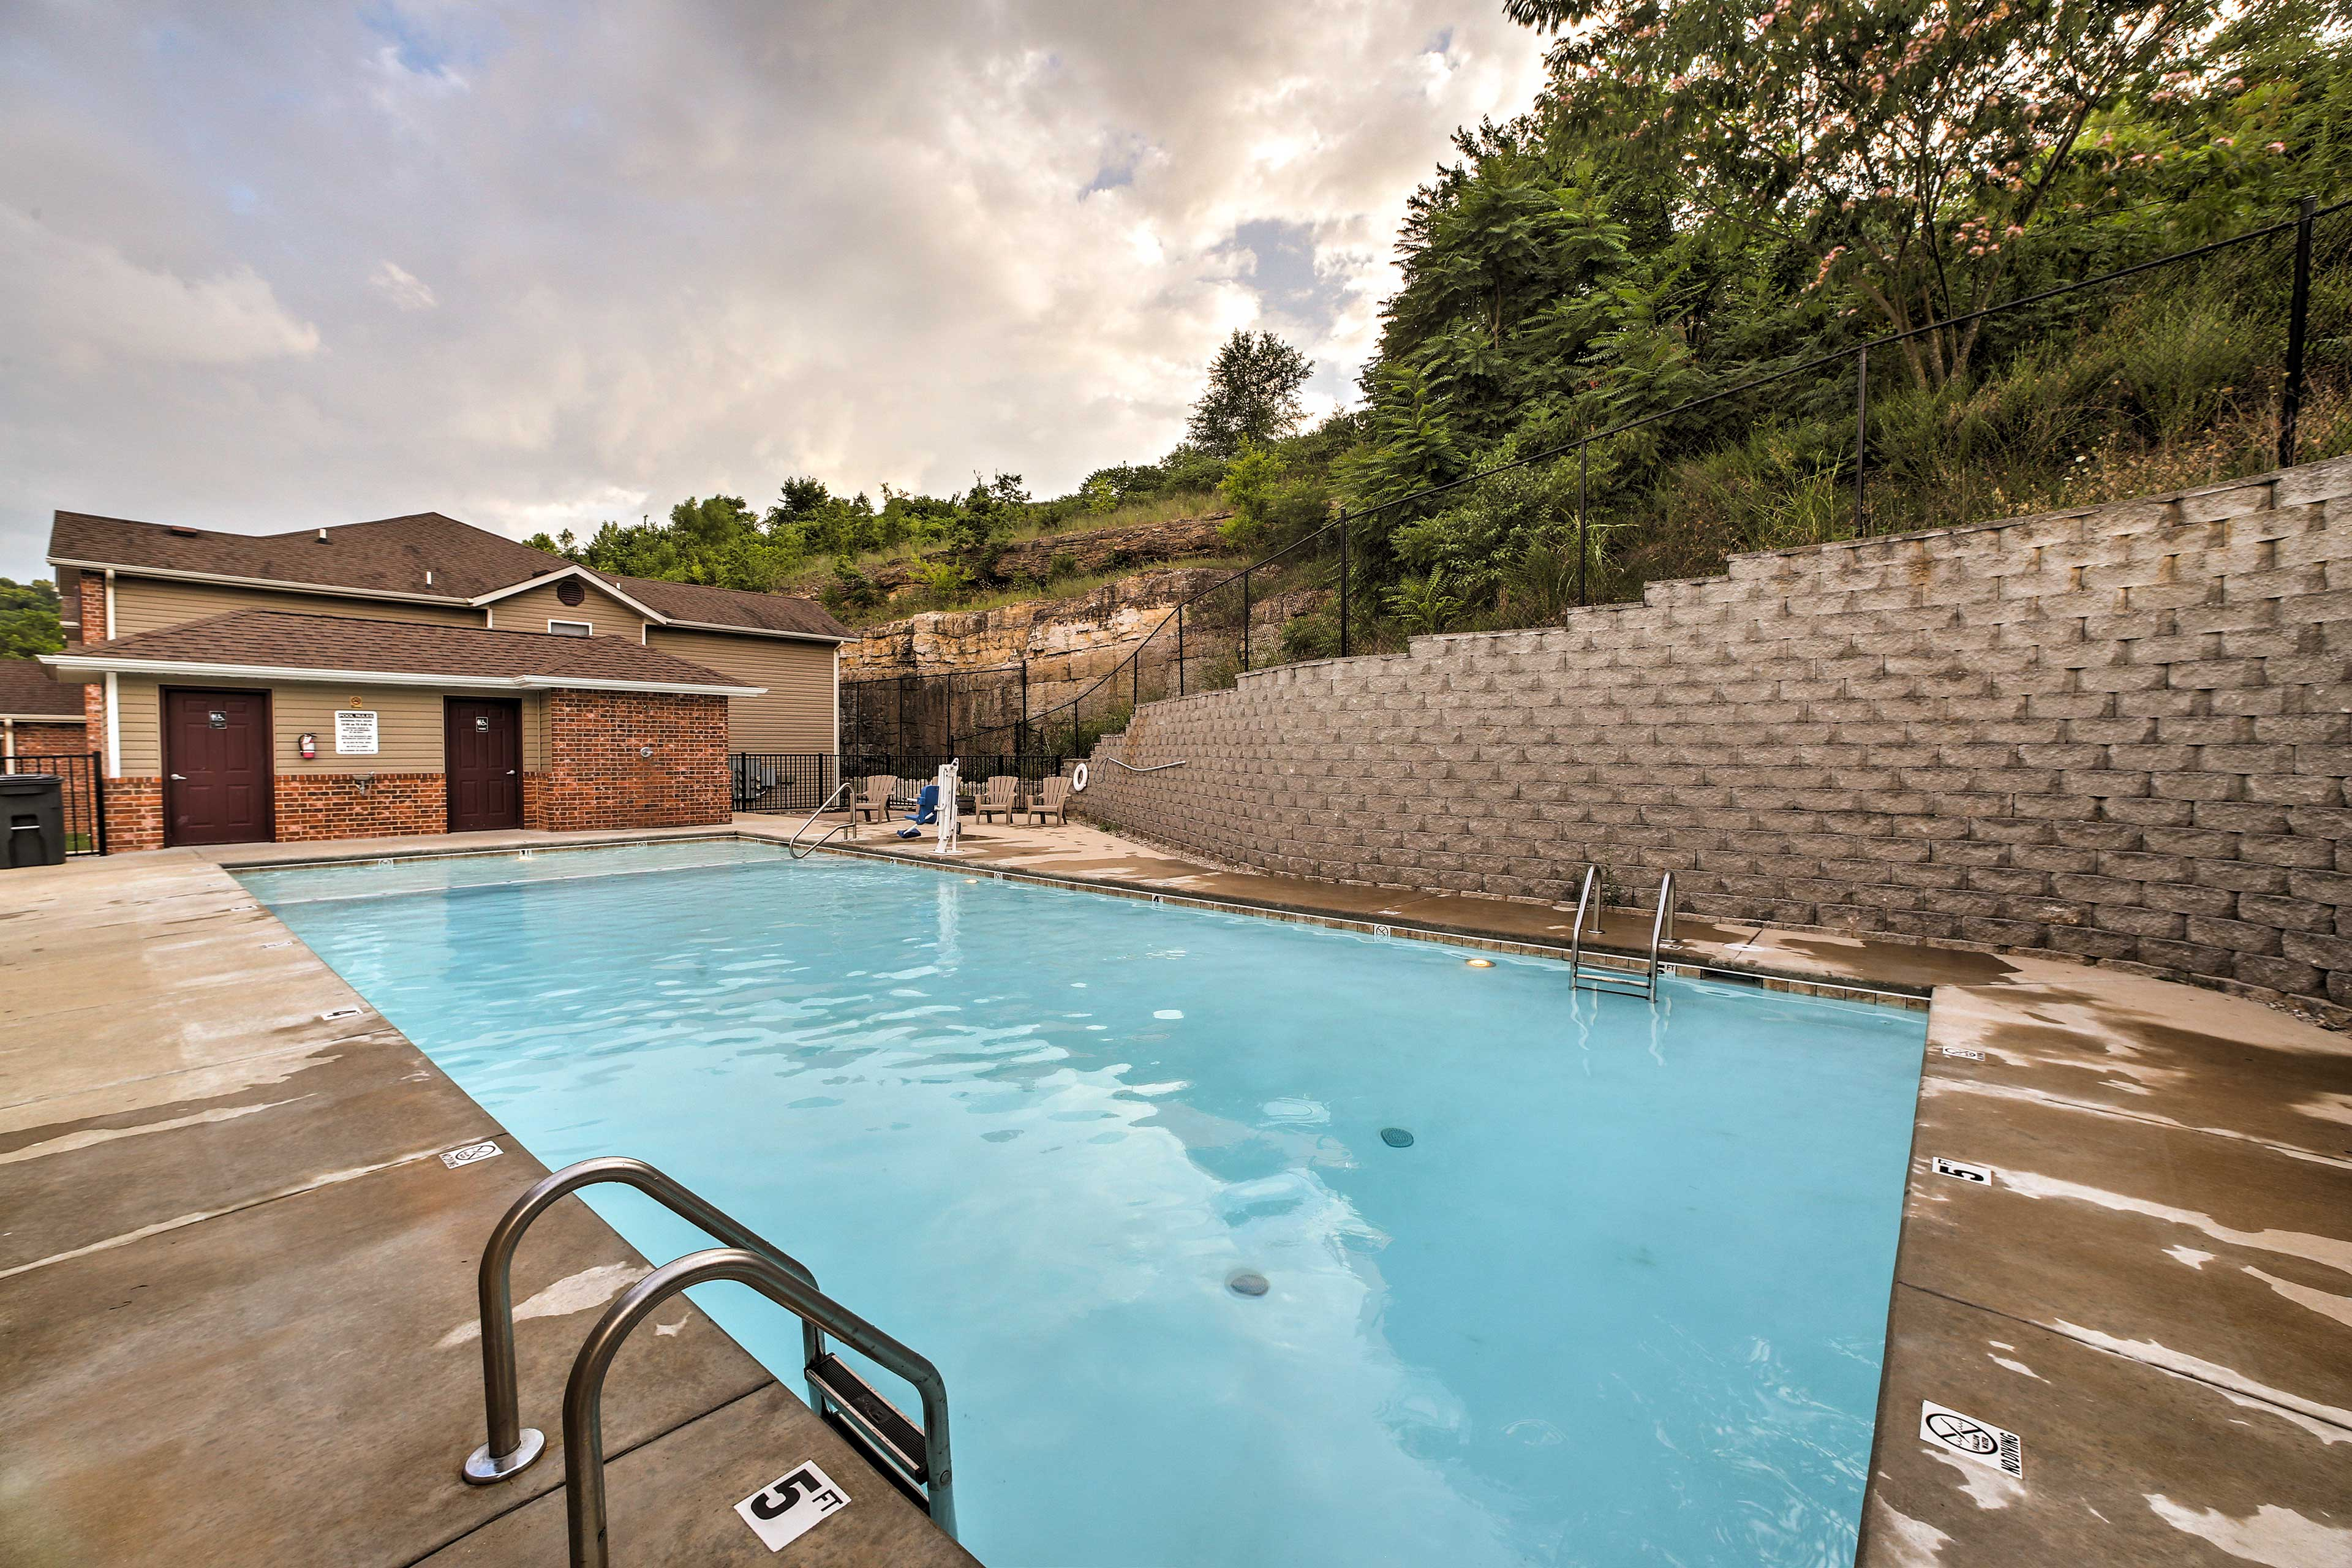 Be sure to check out the community pool during your stay.